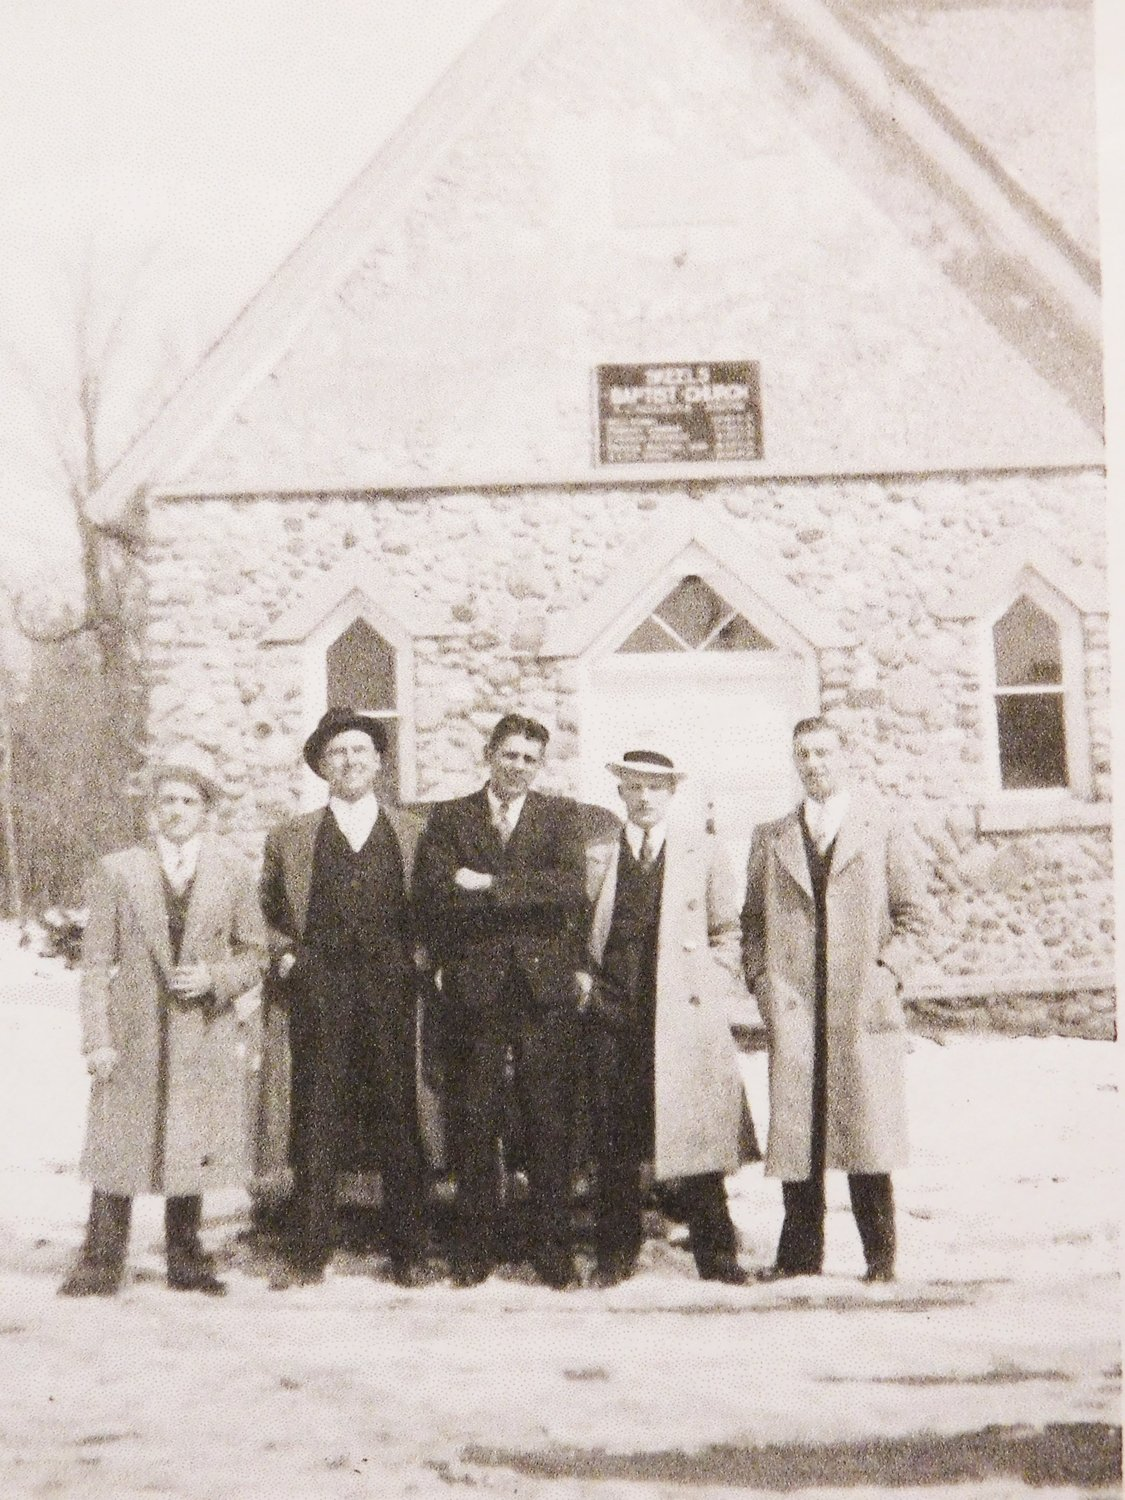 Men of the Skeels Baptist Church in 1939; Oscar Otto, Walter Seipke, Gorden Seipke, Harry Otto.and Ralph (last name unknown).